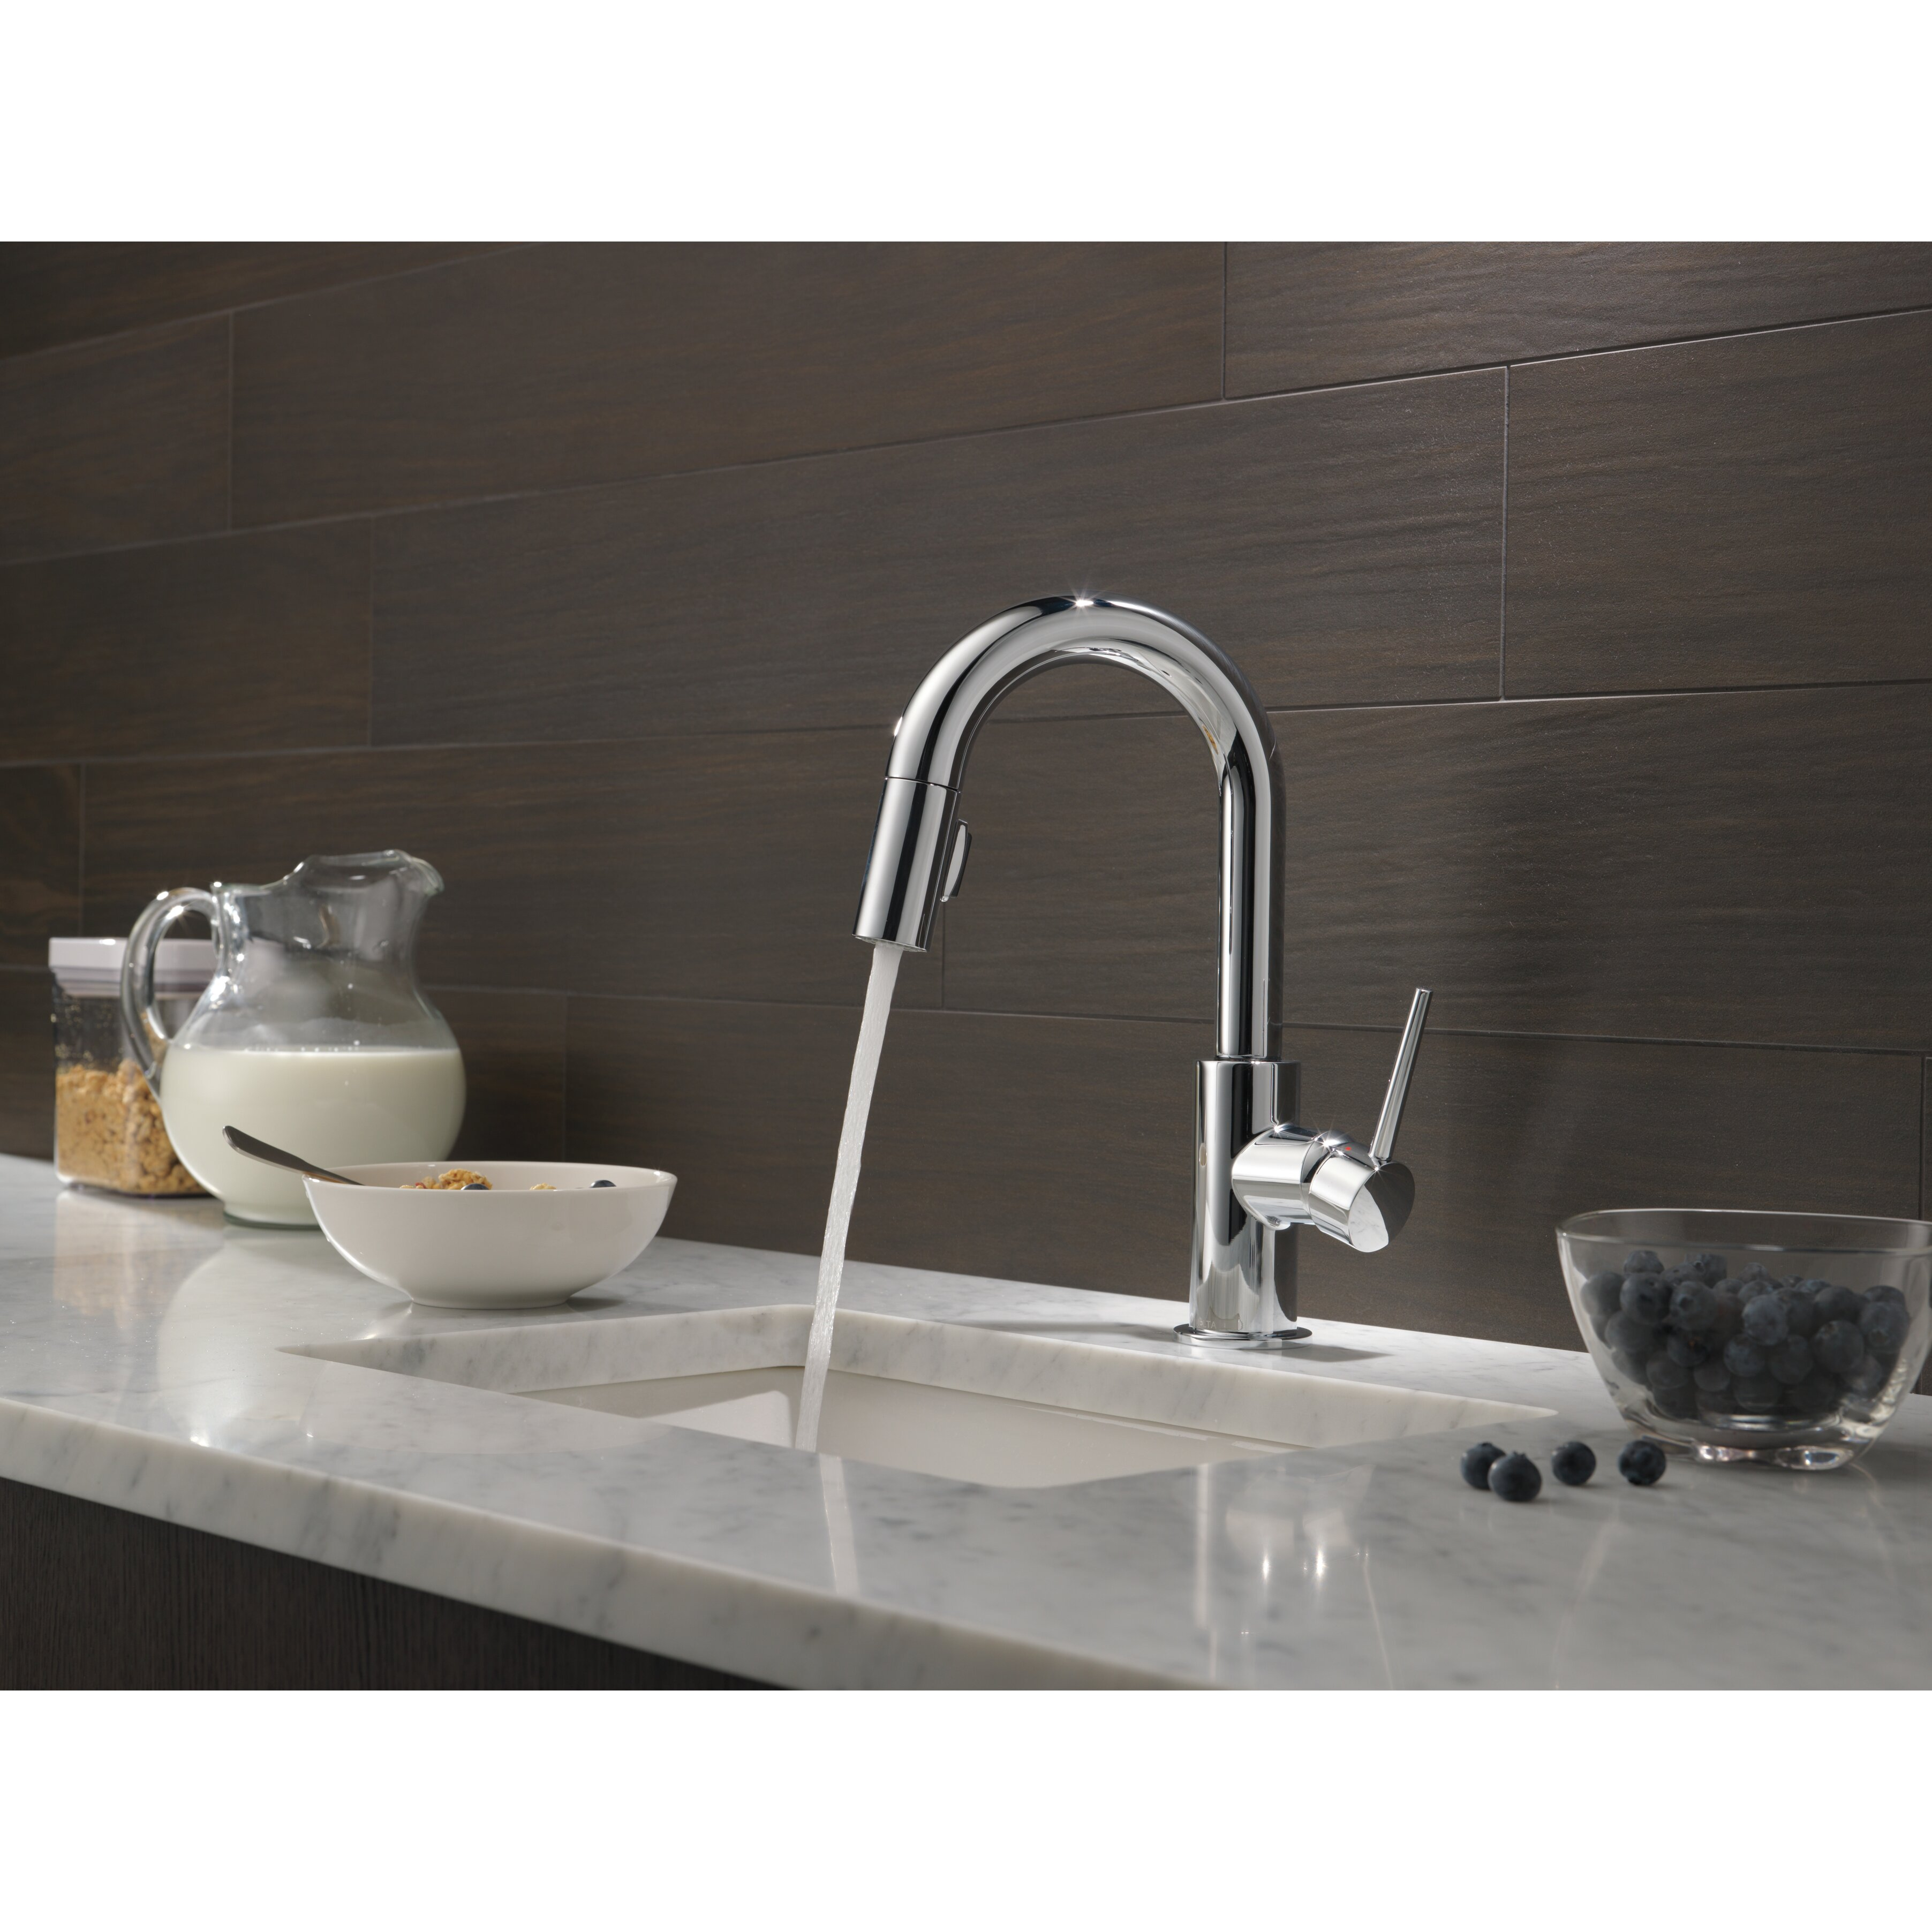 Delta Pull Down Kitchen Faucet Trinsicar Kitchen Single Handle Pull Down Bar Prep Faucet